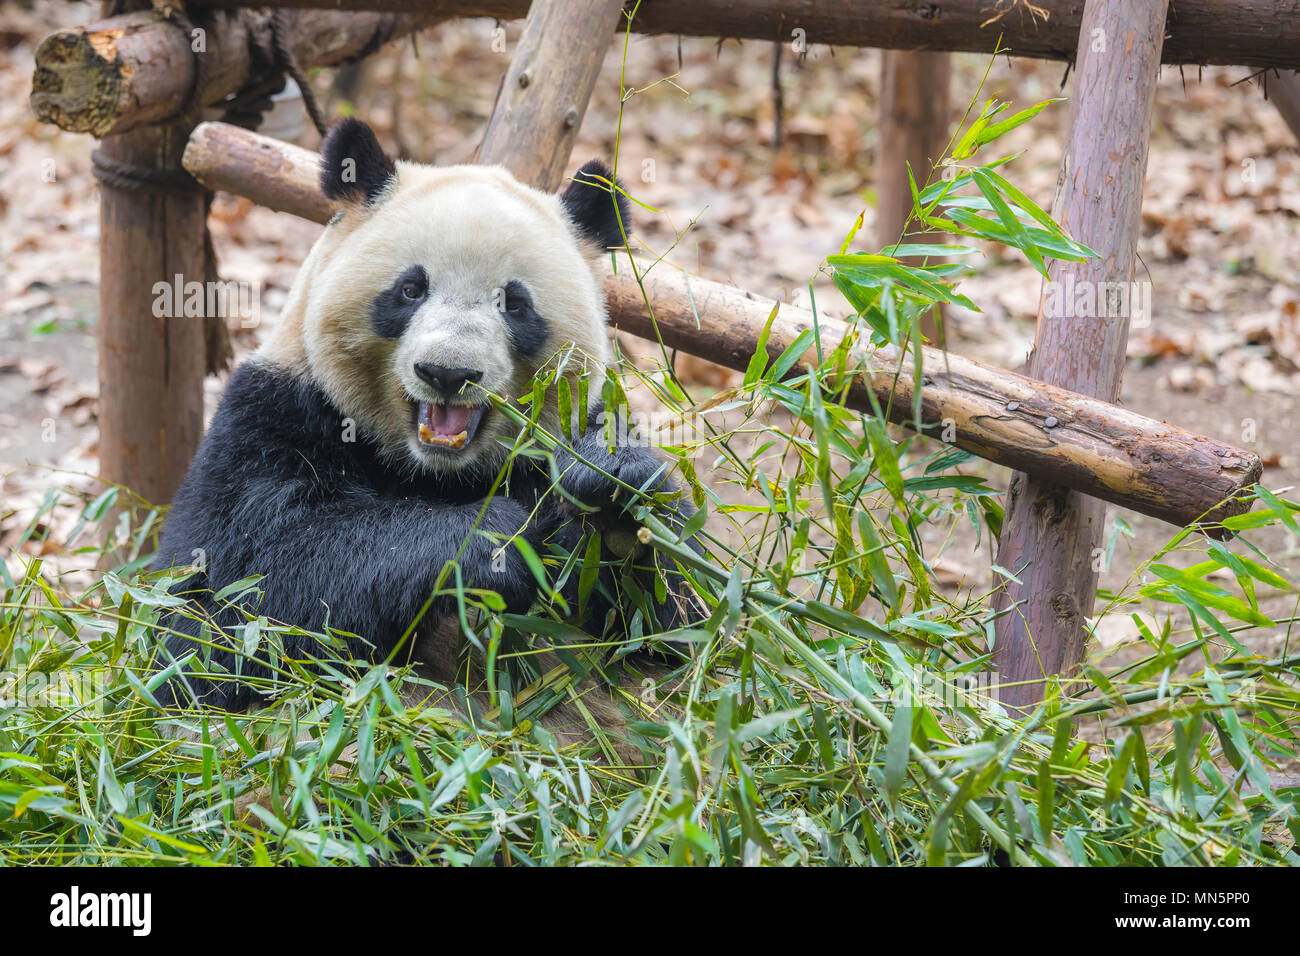 Portrait of a giant panda eating bamboo . . Stock Photo